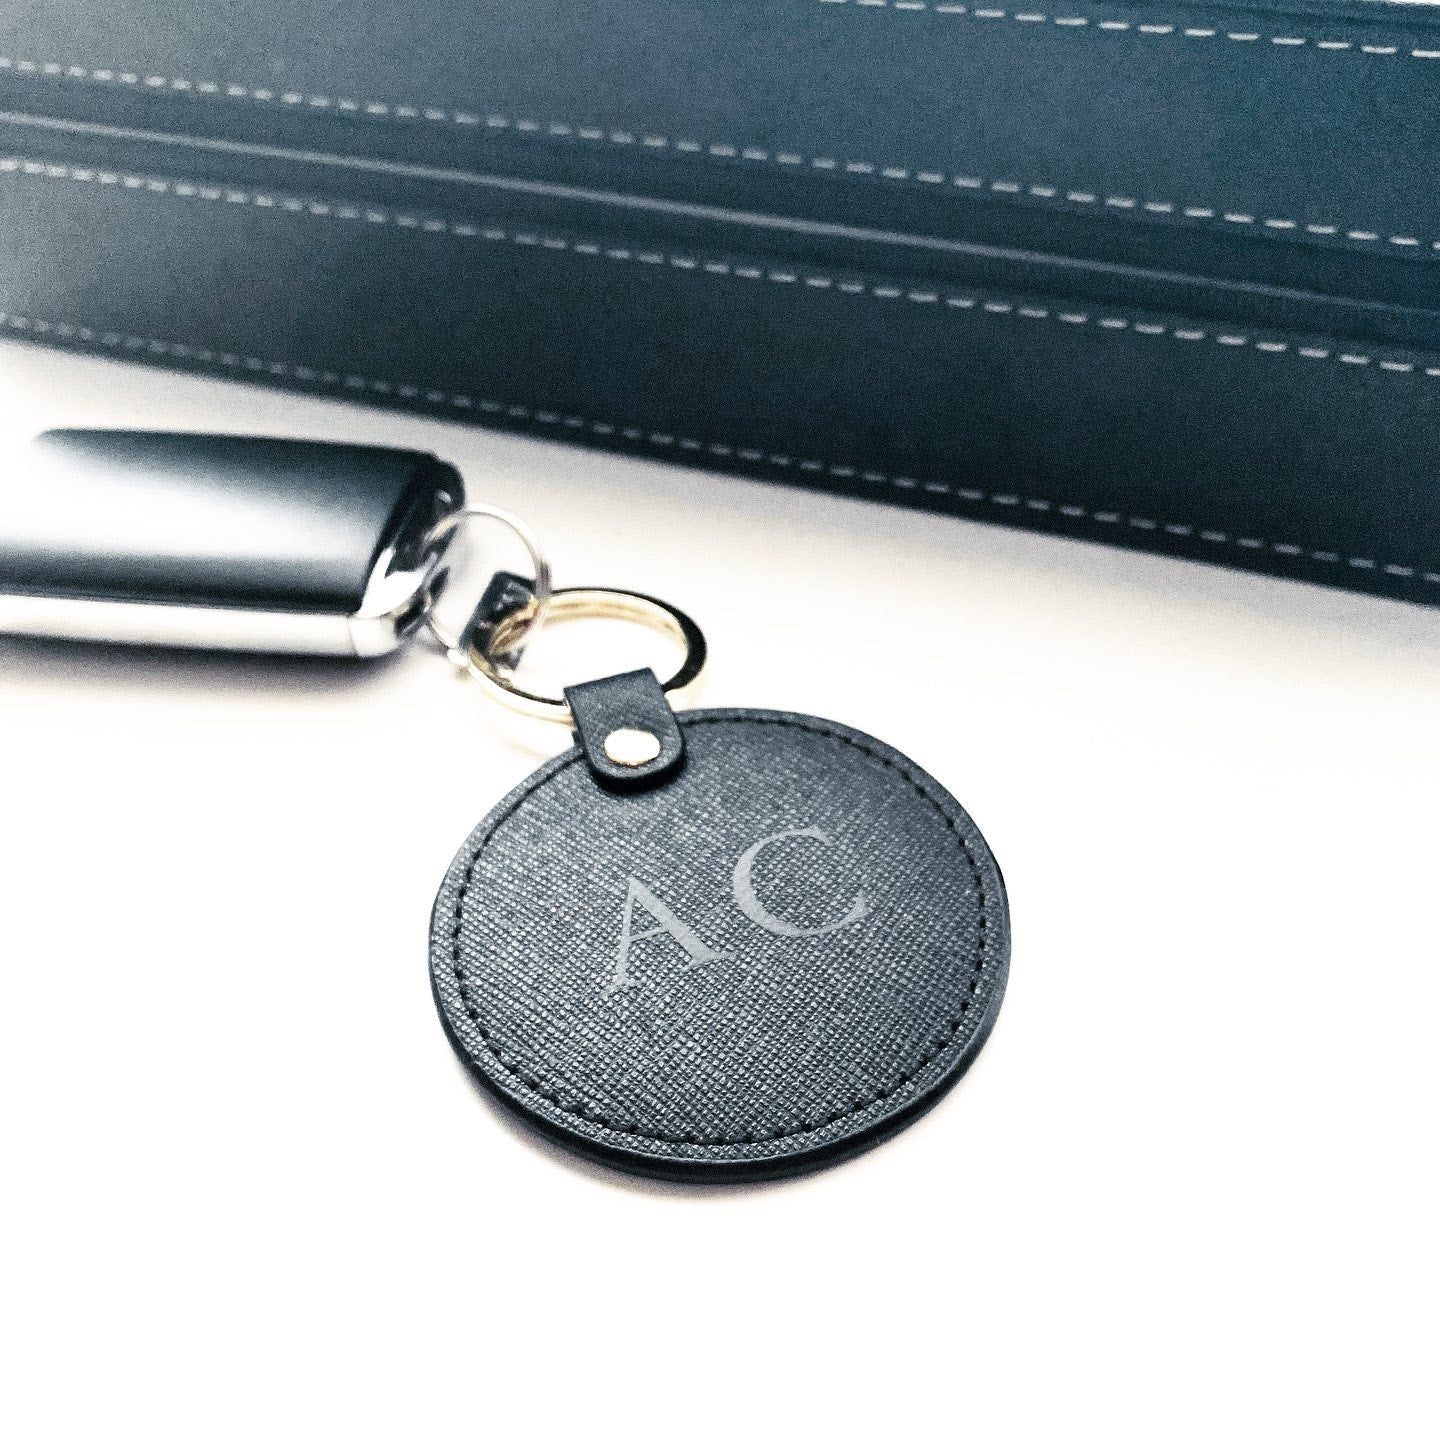 This Is Me By Angie - Monogrammed Accessories & Apparel